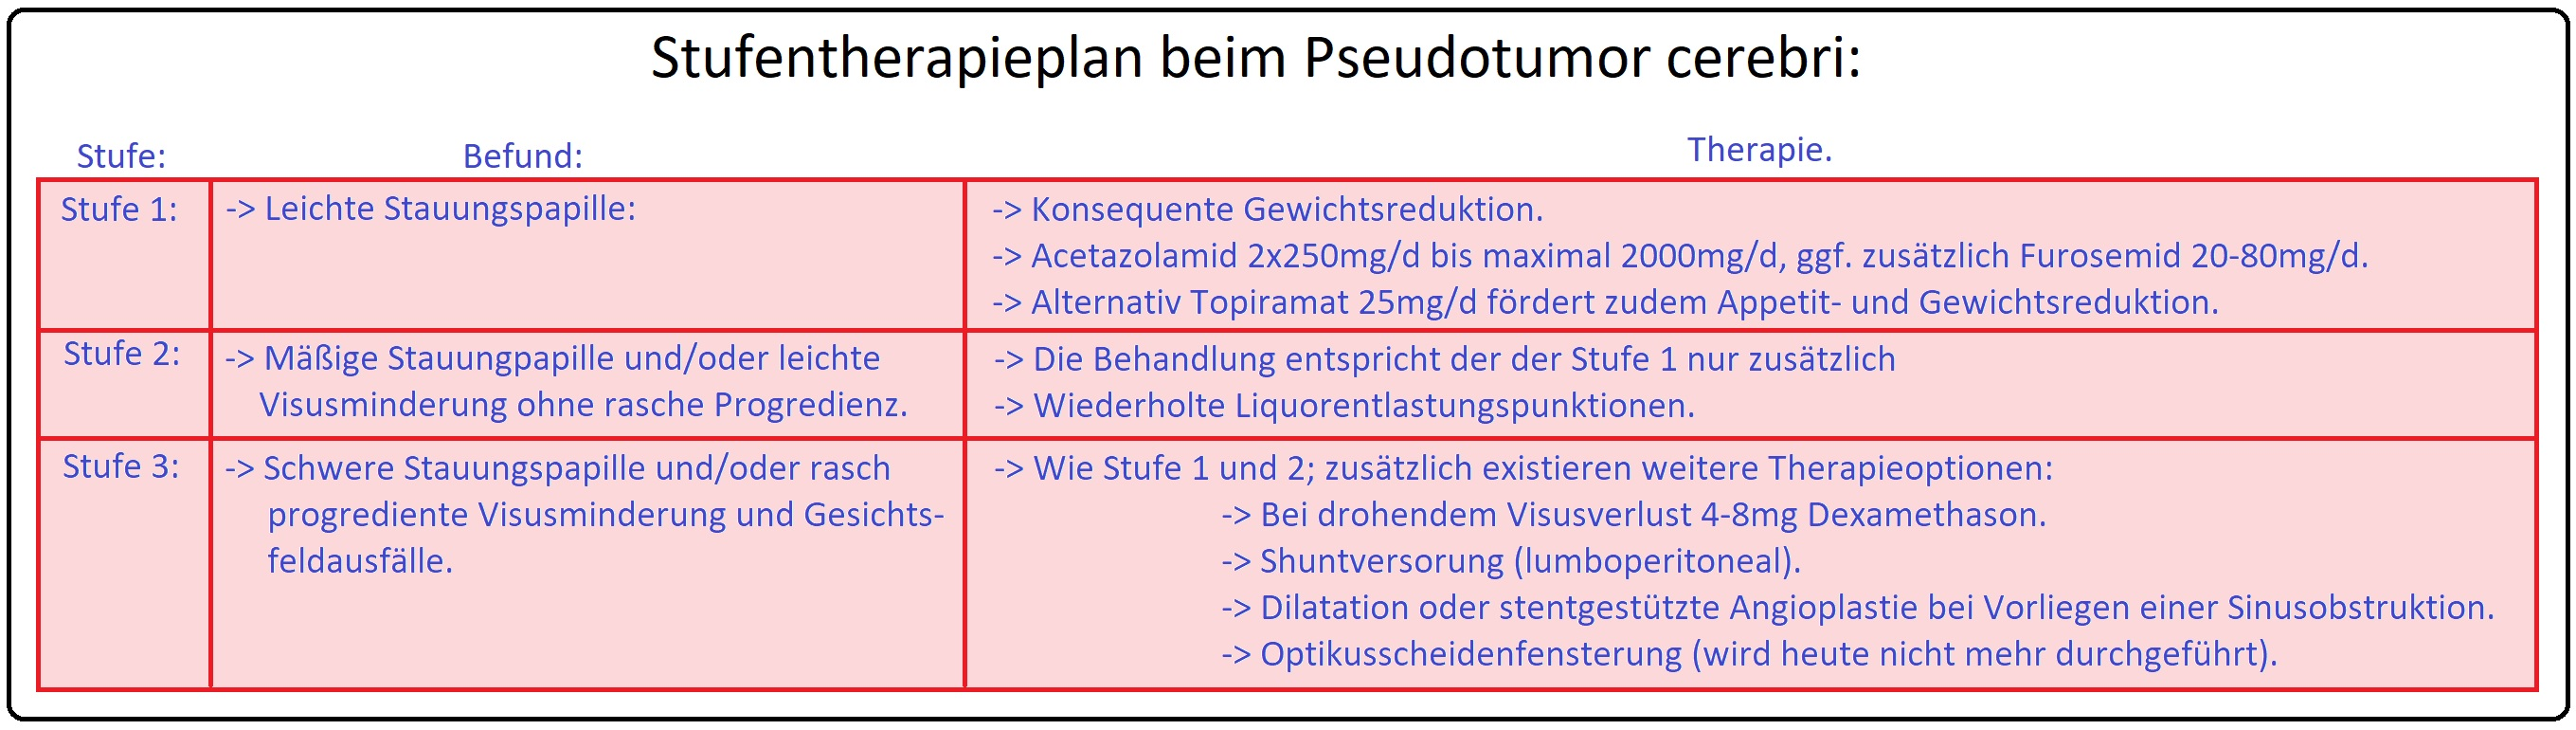 058 Stufentherapie beim Pseudotumor cerebri